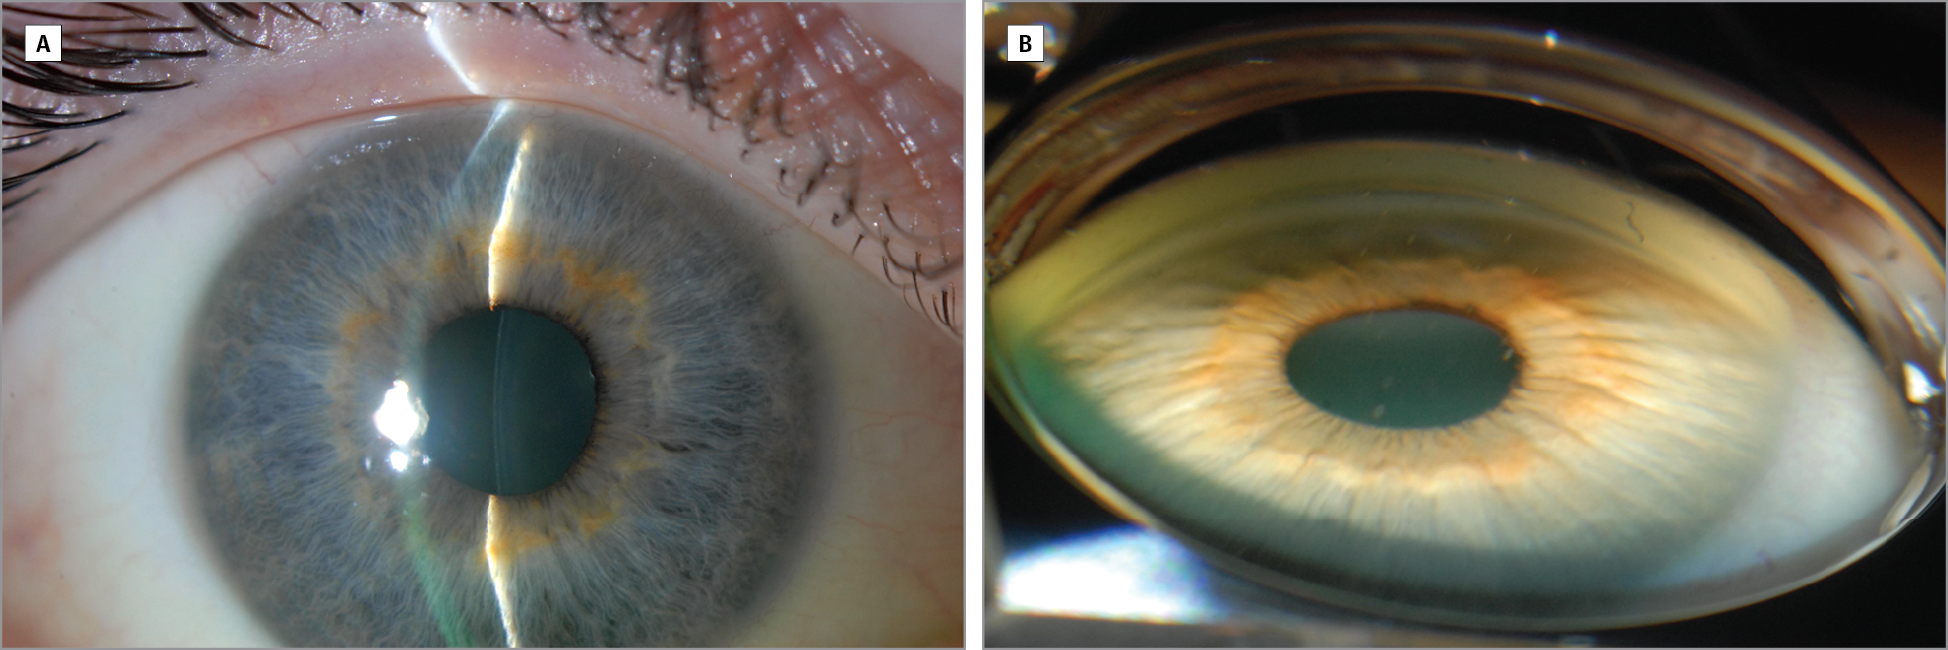 canadian journal of ophthalmology instructions for authors